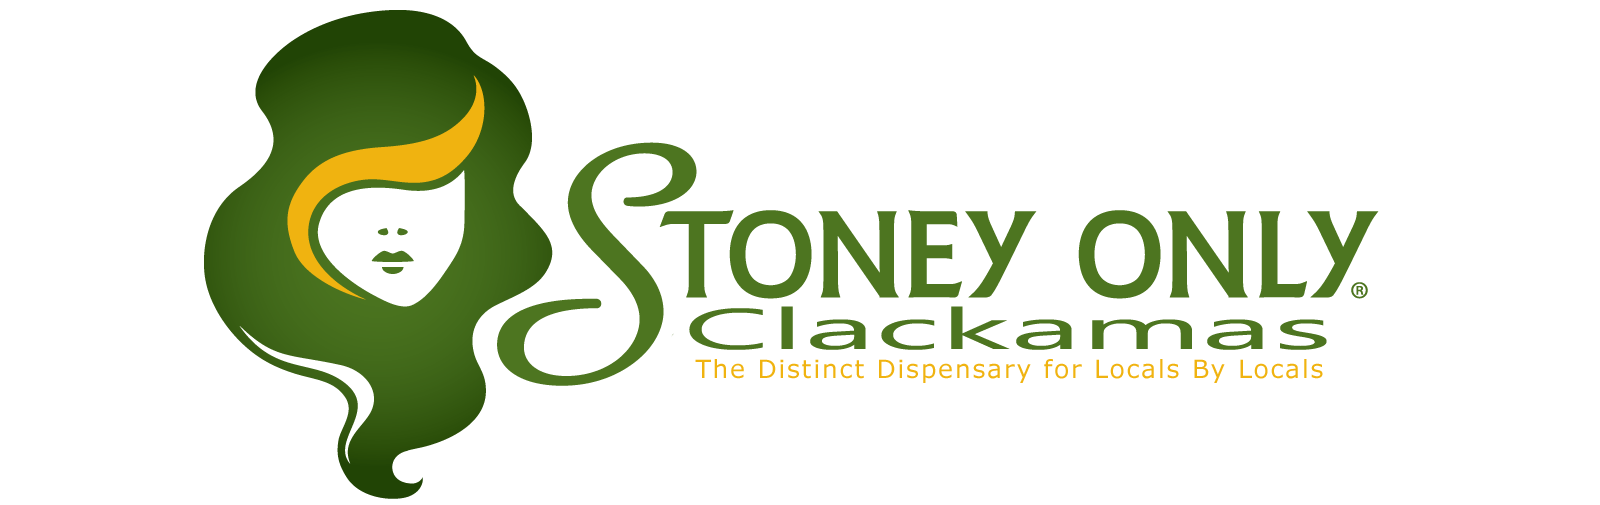 Stoney Only Clackamas